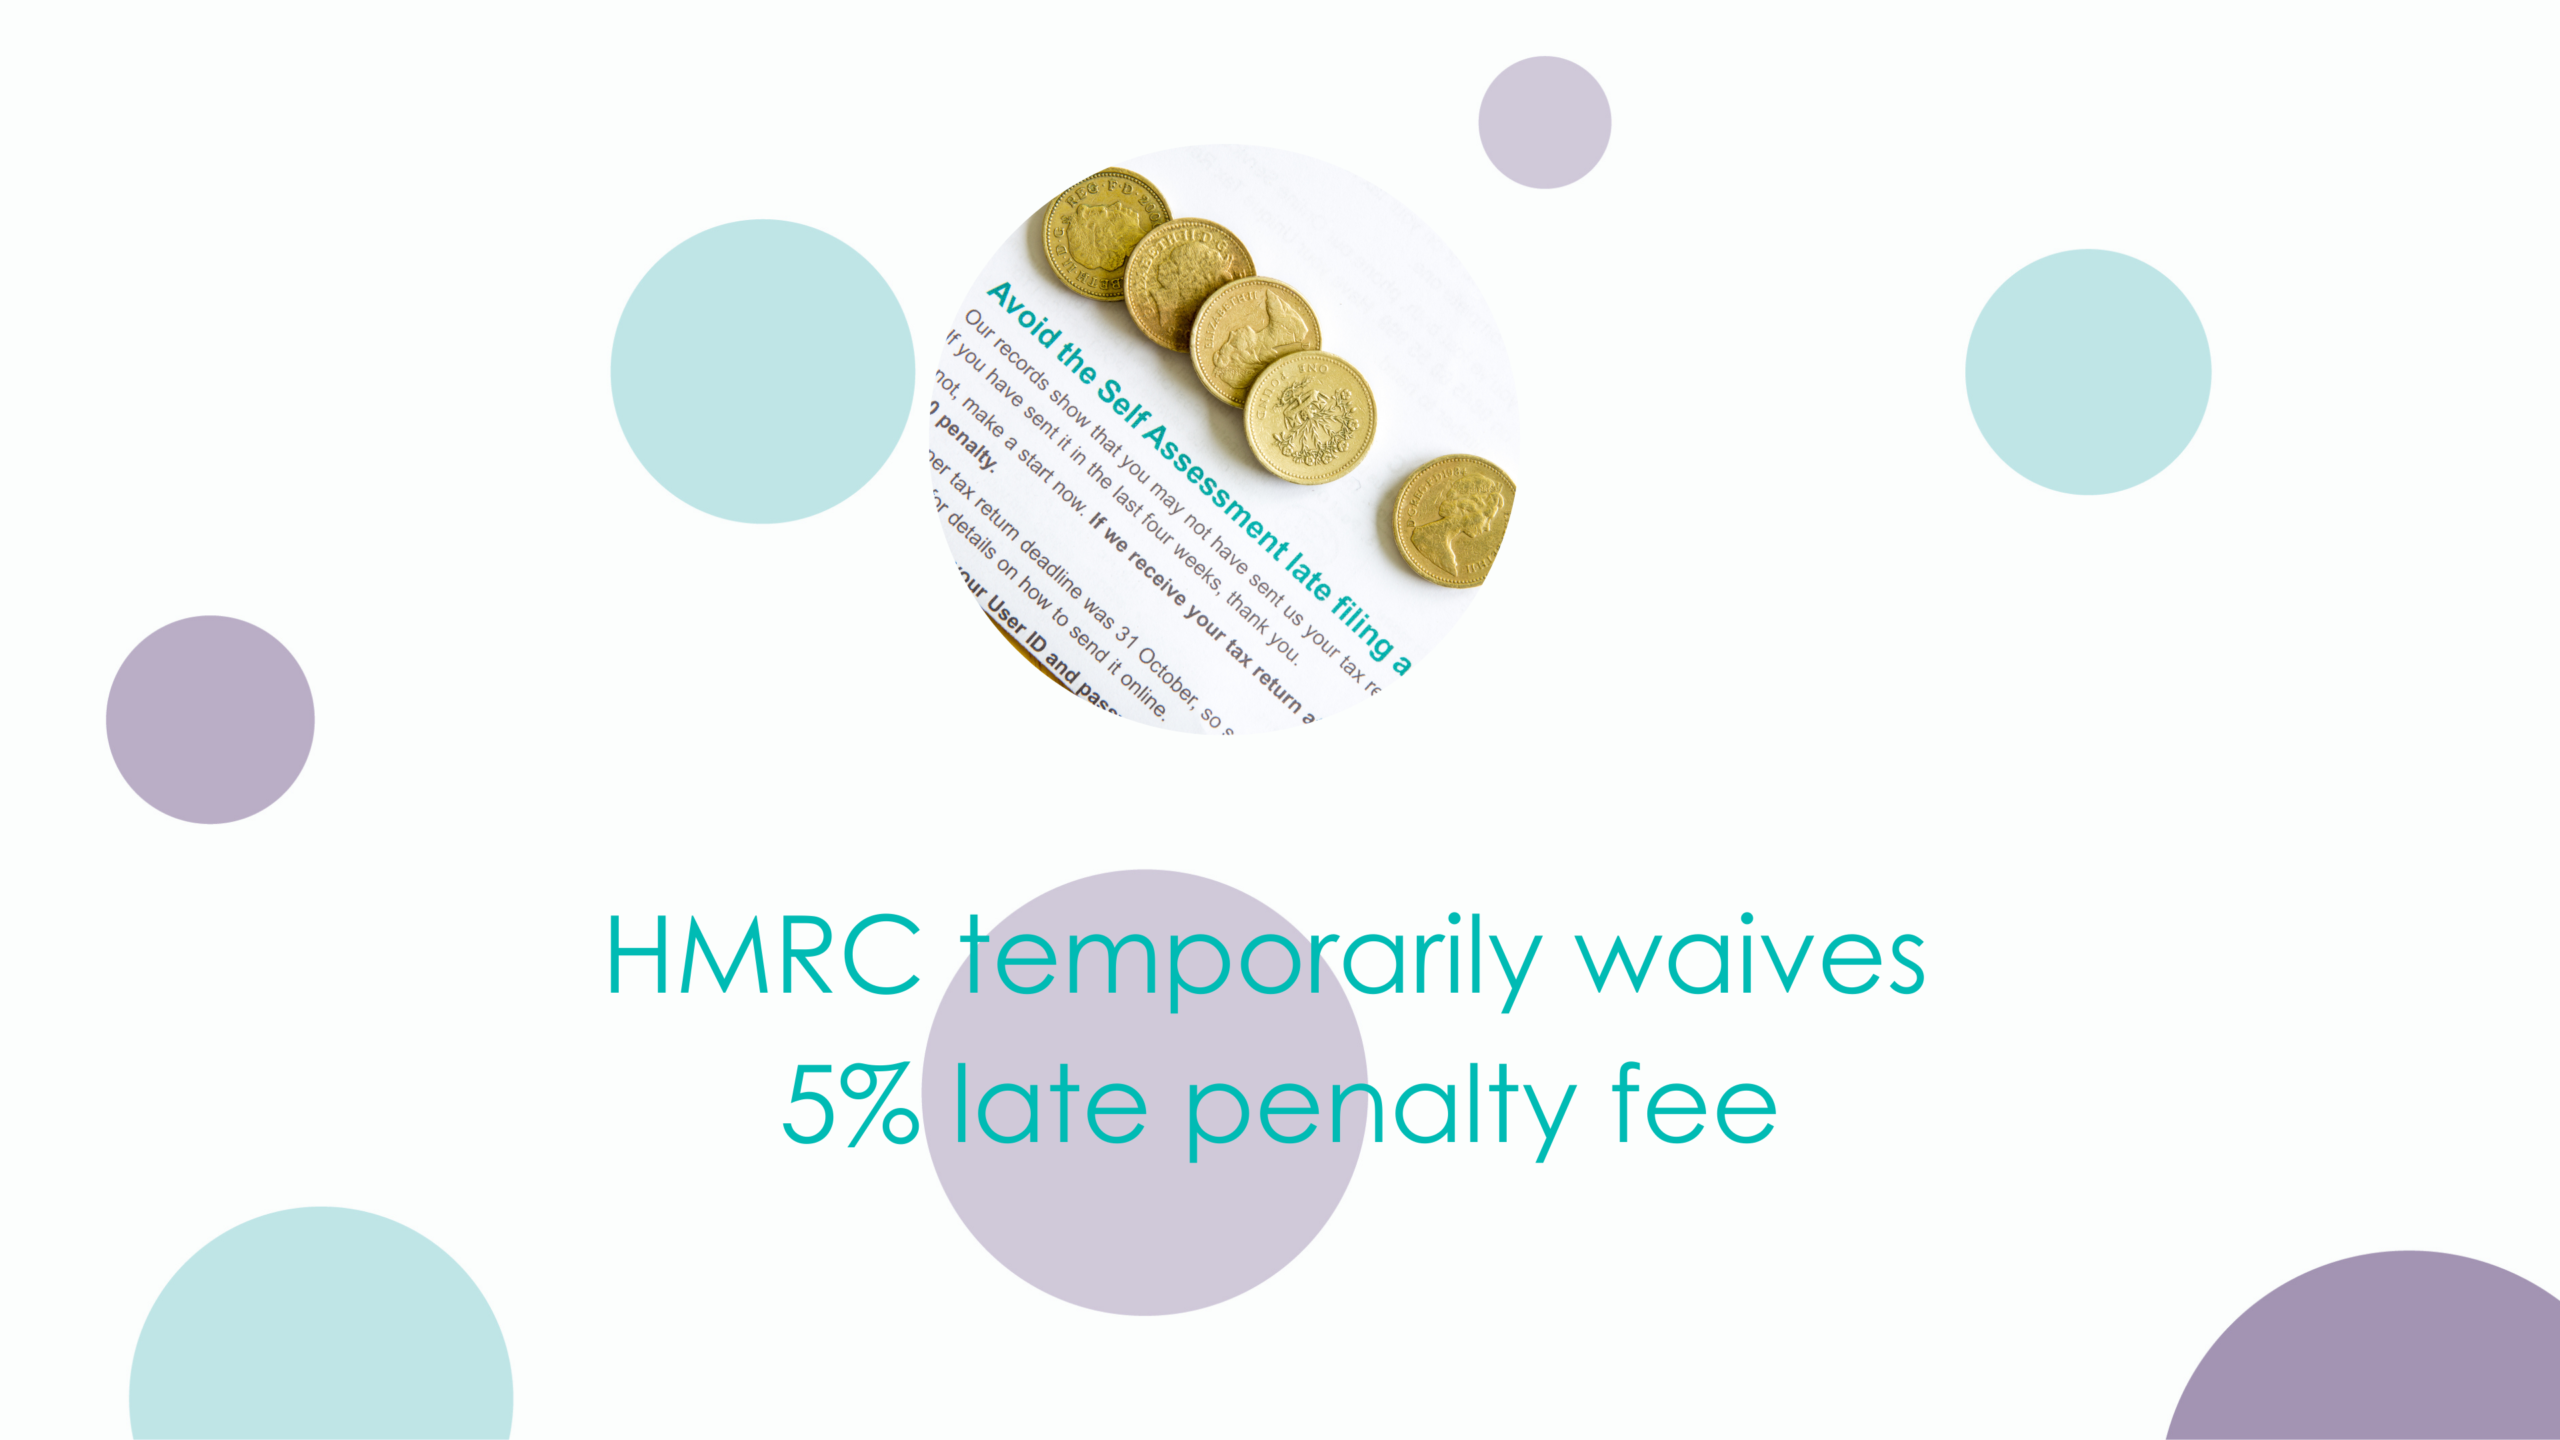 HMRC temporarily waives 5% late penalty fee